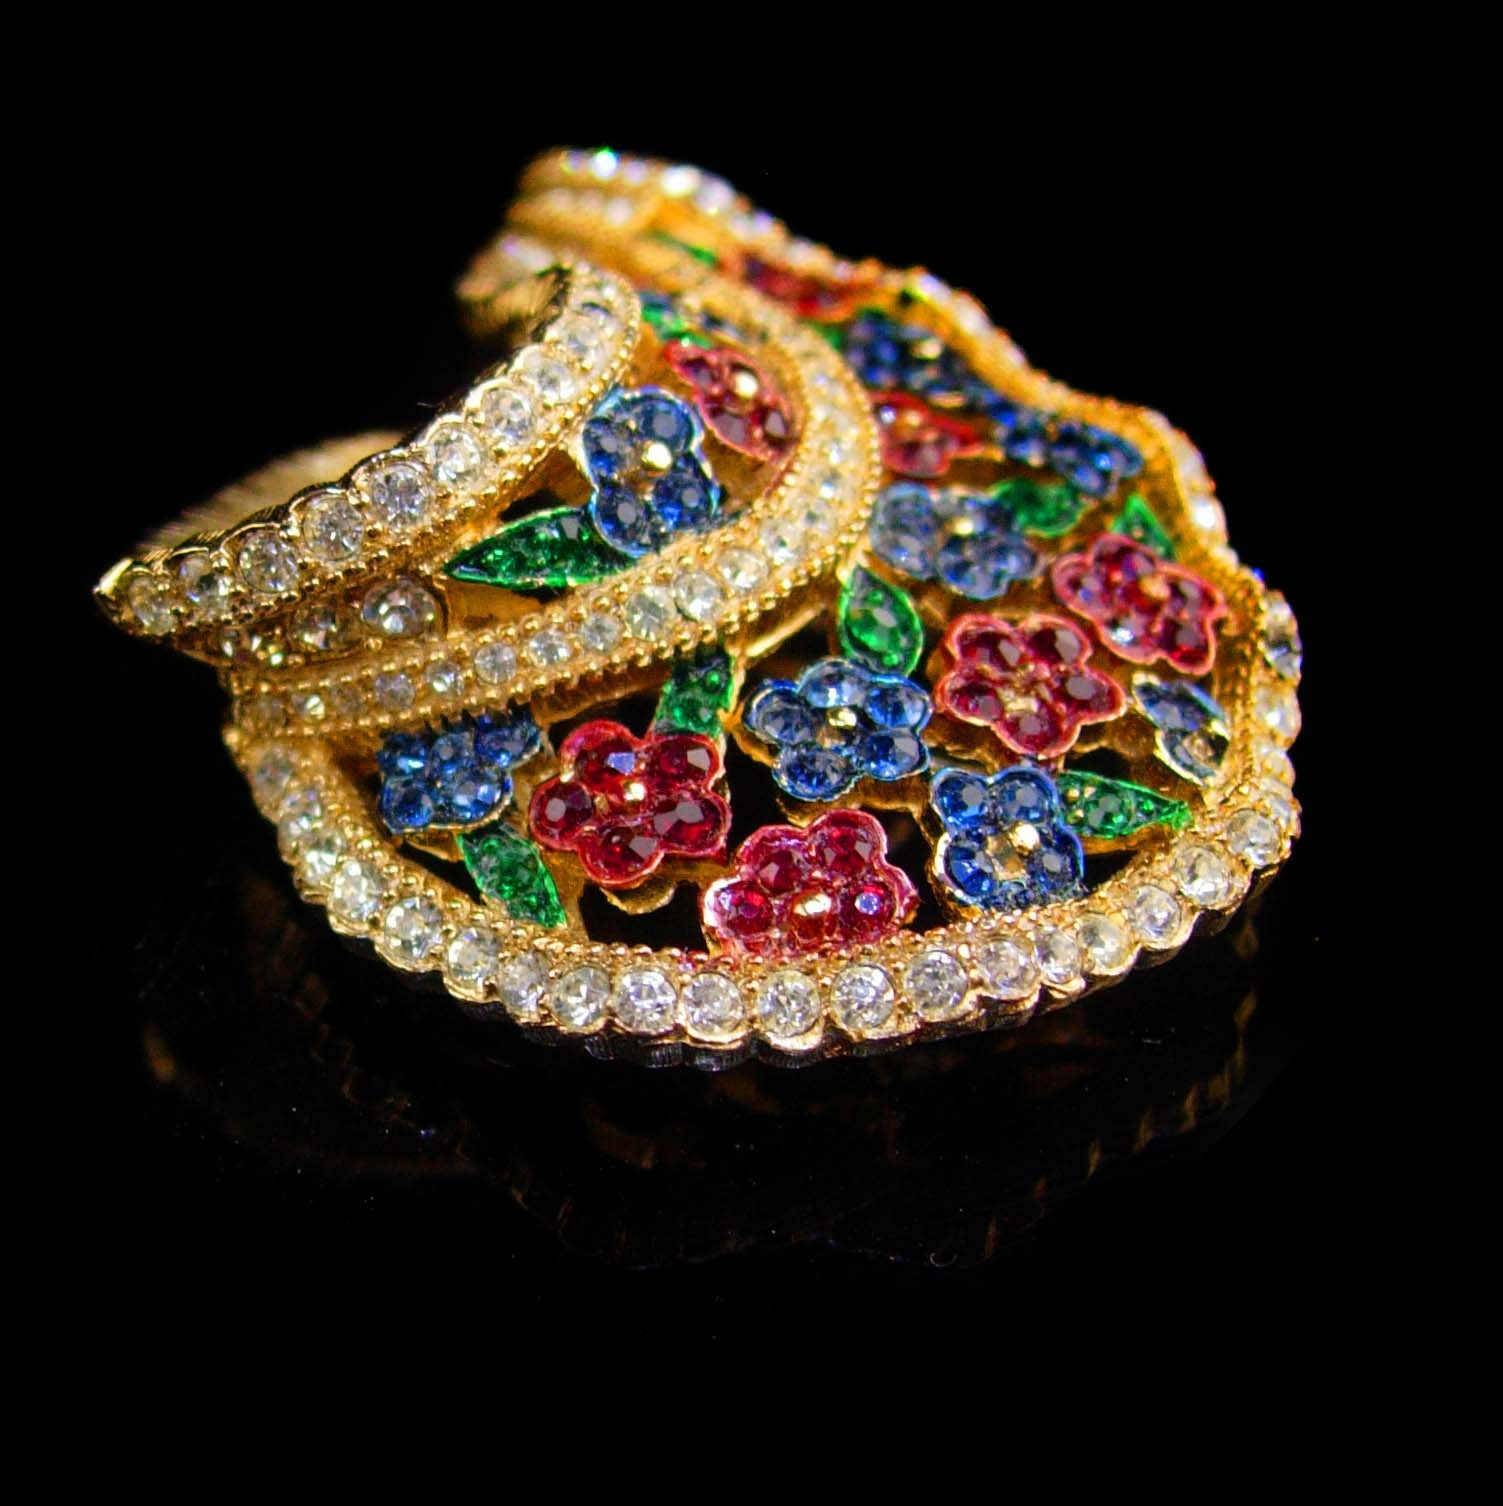 Couture Jewelry - Signed LeC Le Couturier - Marcel Boucher - designer couture